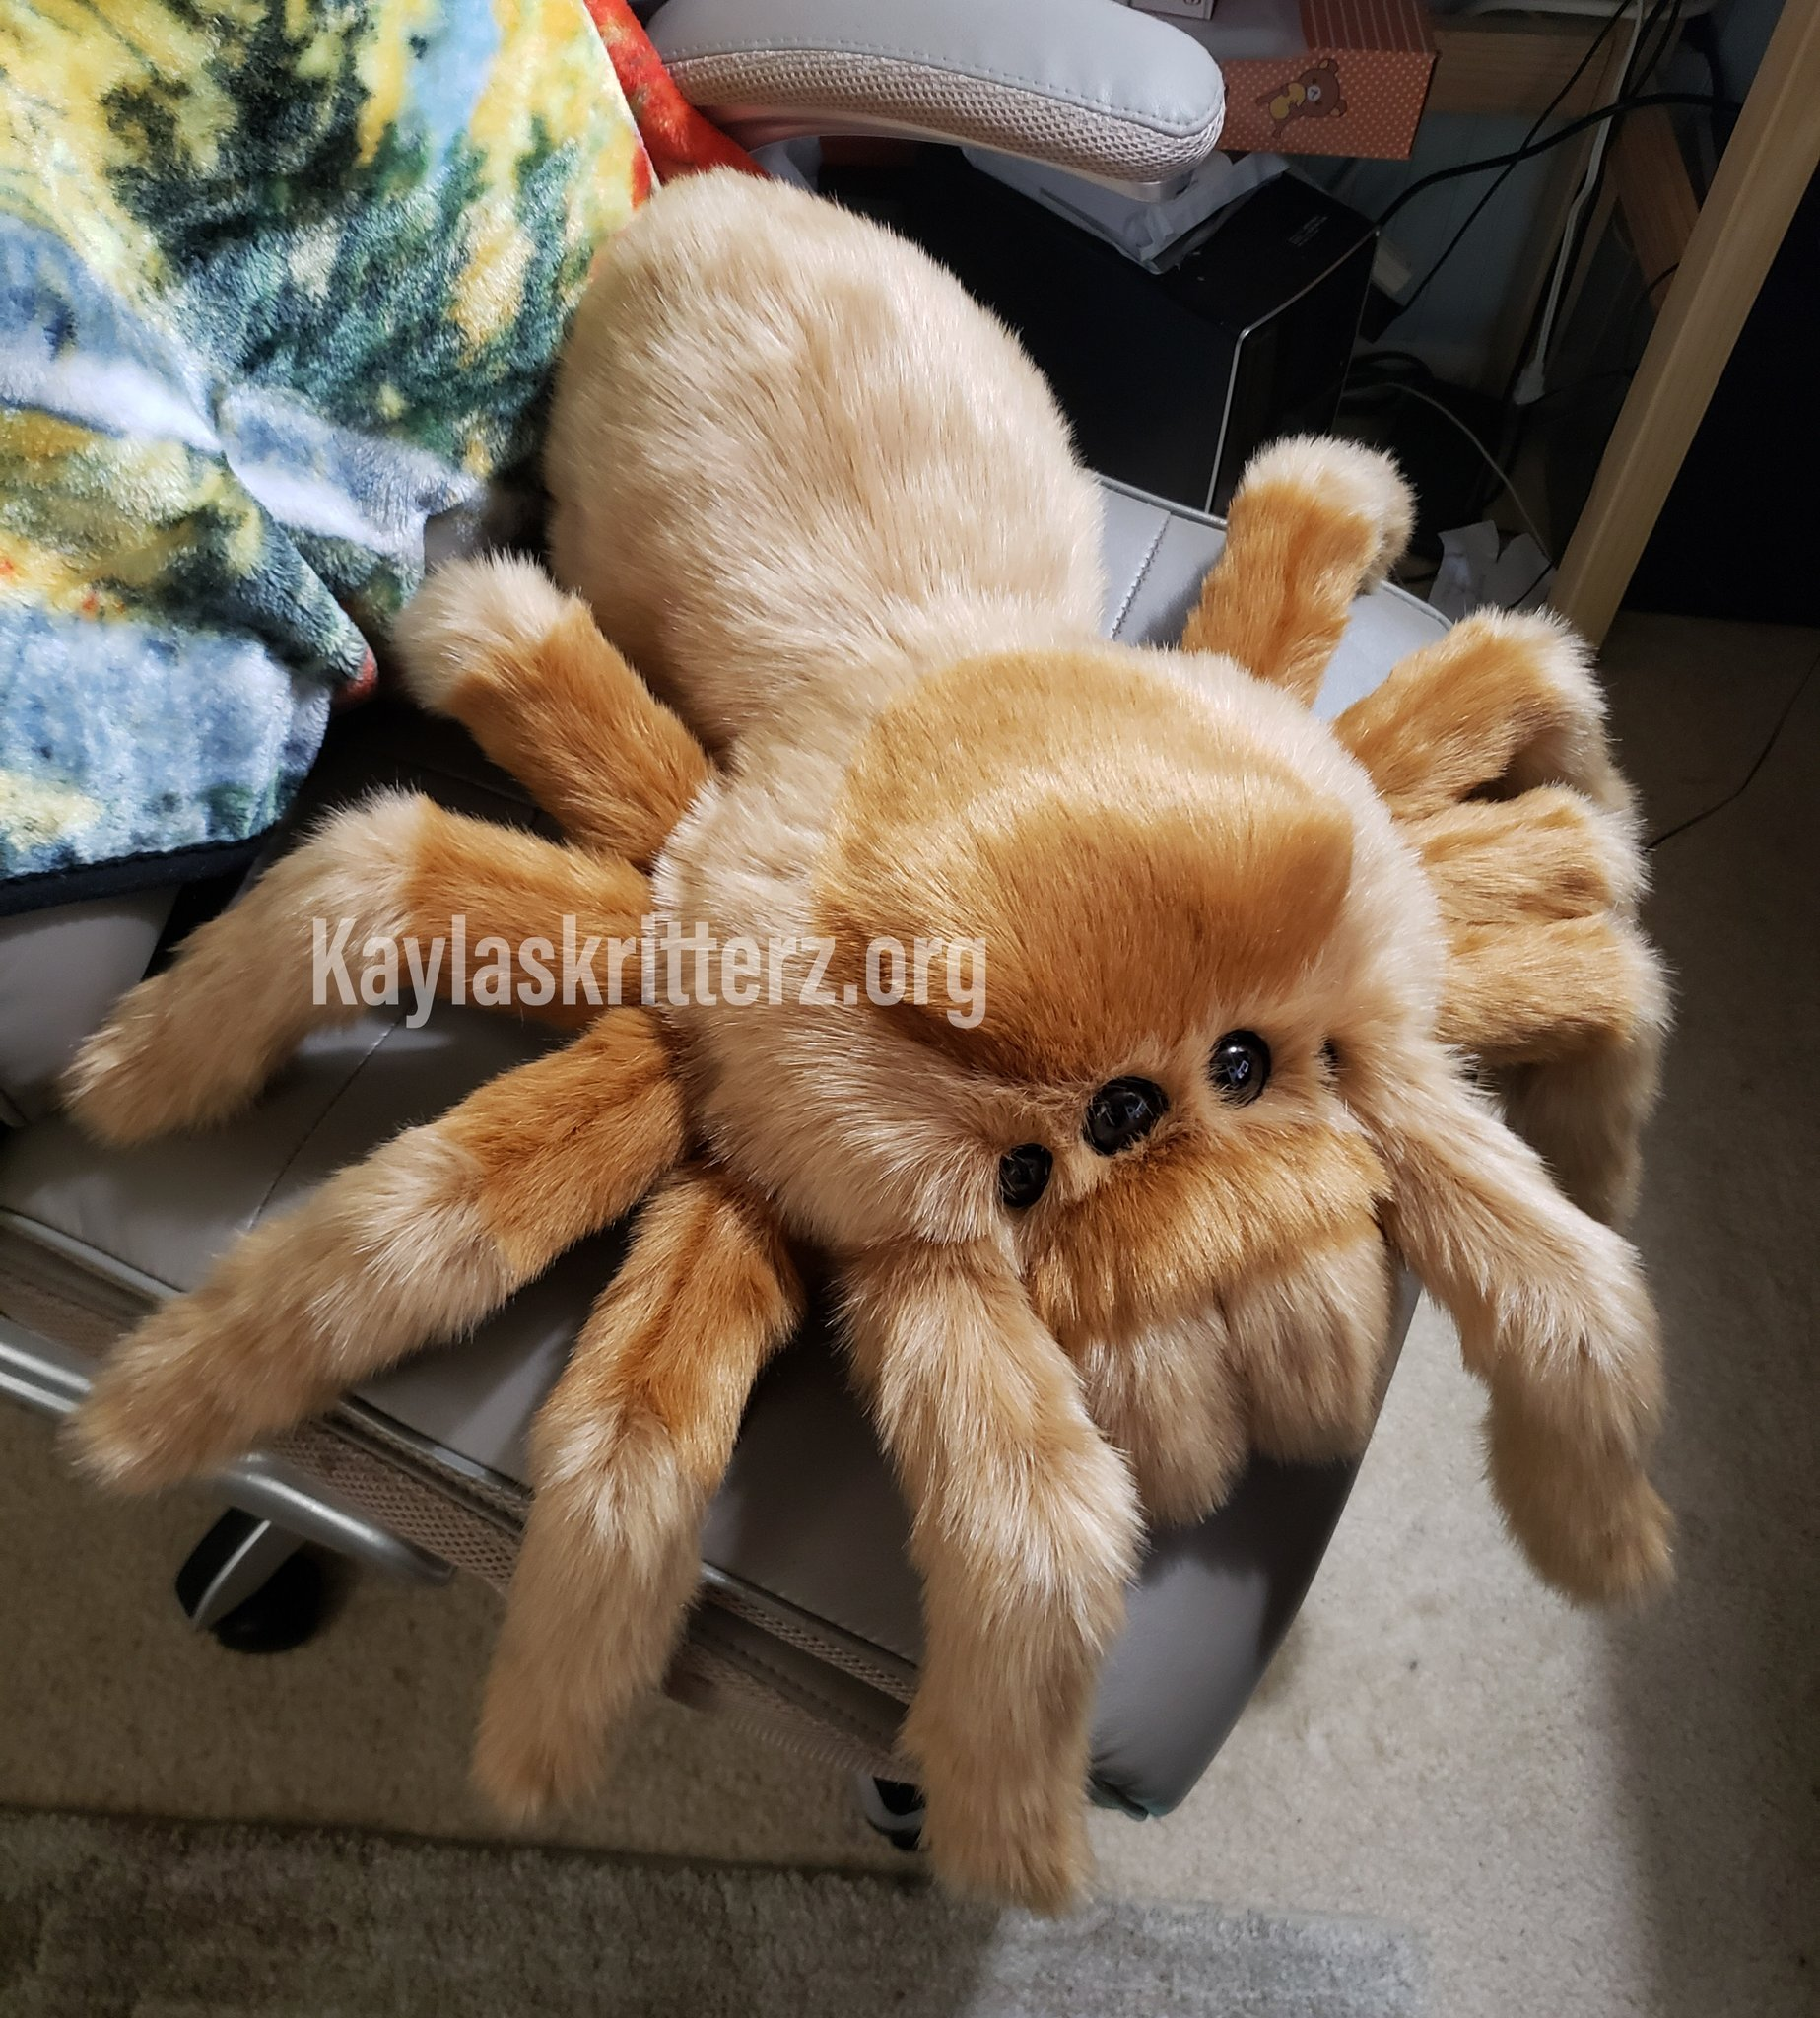 Tarantula Stuffed Animal, Blue On Twitter Finished Up This Rose Hair Tarantula Plush For Her Owner They Requested No Armature So Her Legs Are Quite Floppy And Cute Haha Official Pics To Come Soon As